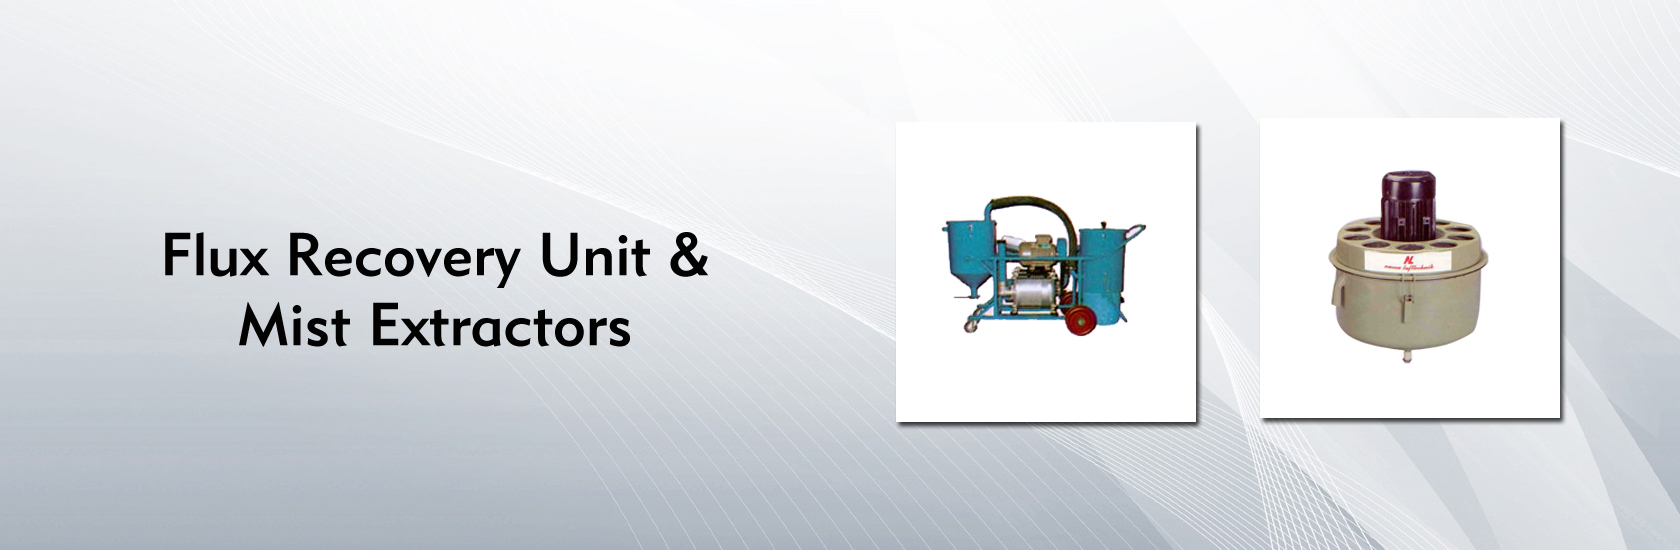 Industrial Vacuum Cleaners Oil Recycling Units Dust